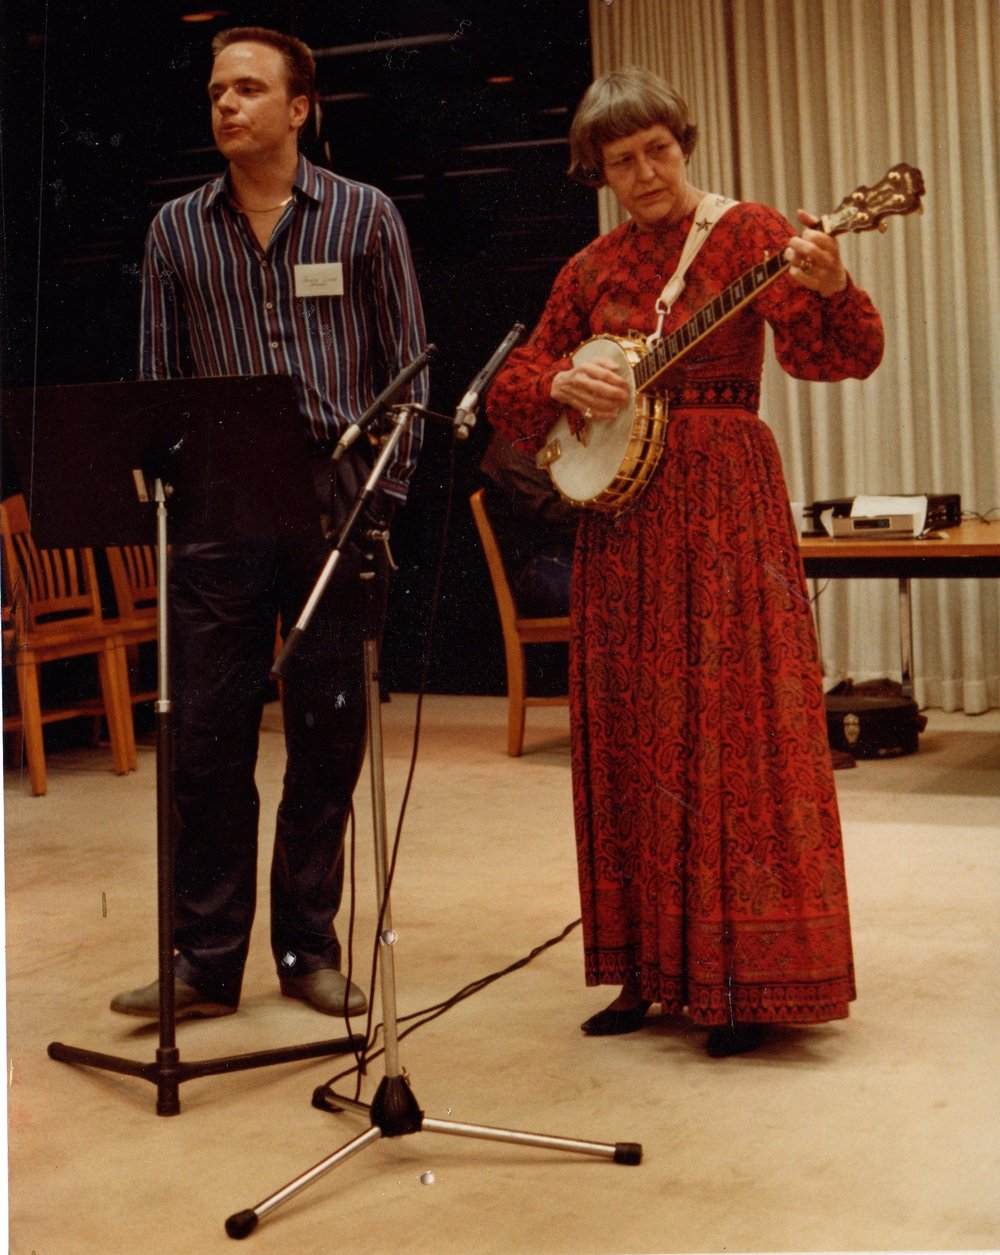 Joseph Franklin Lomax and Hally Wood in performance, Austin, Texas, 1982